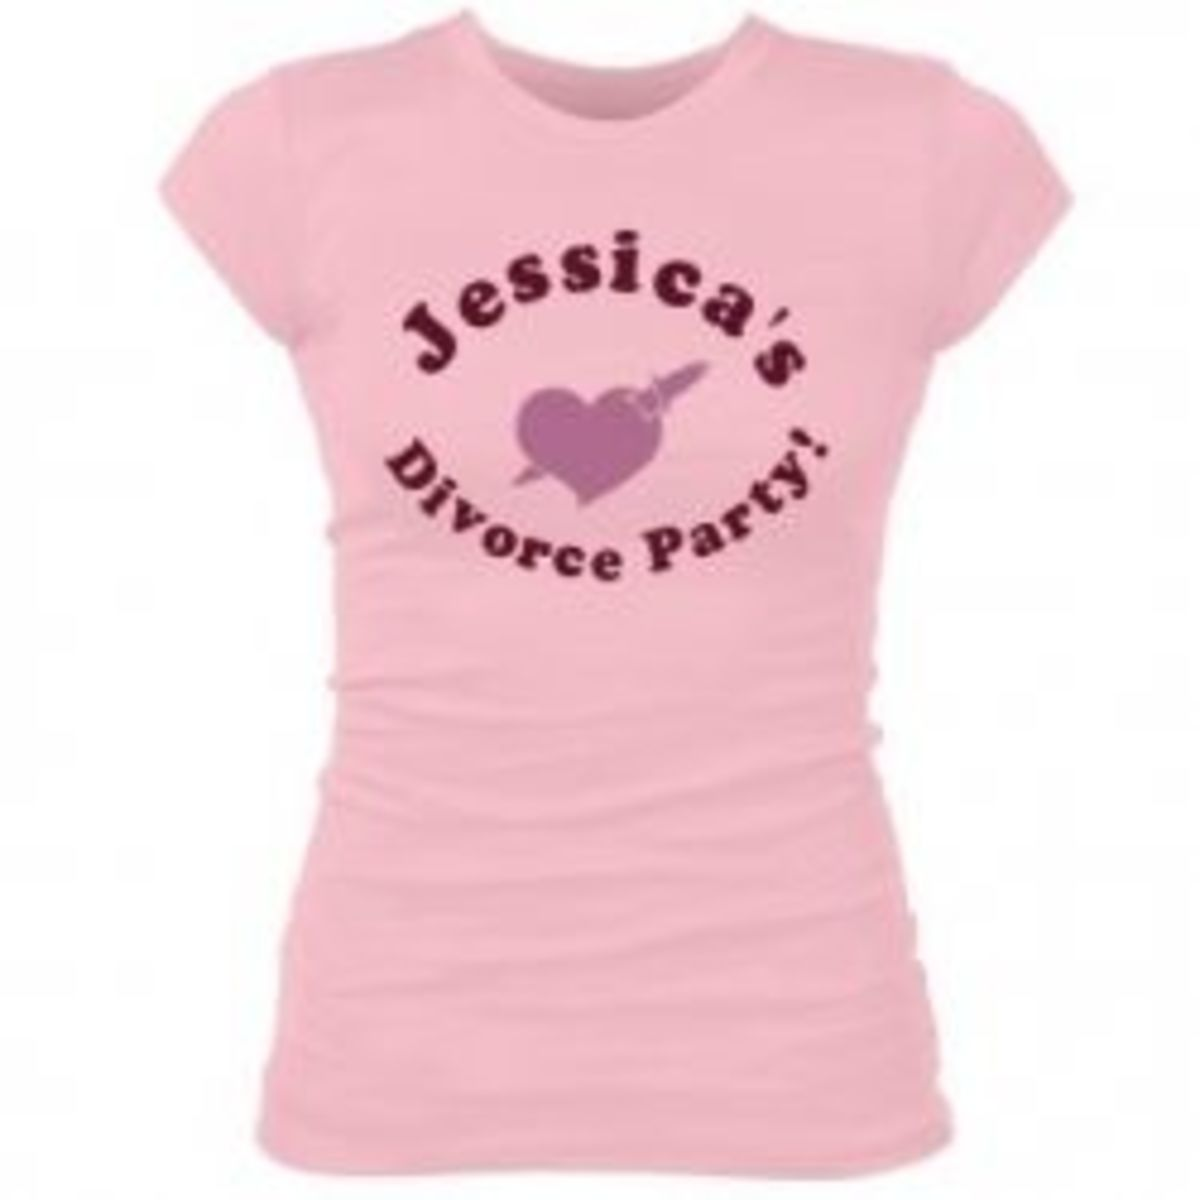 Divorce Party T Shirt